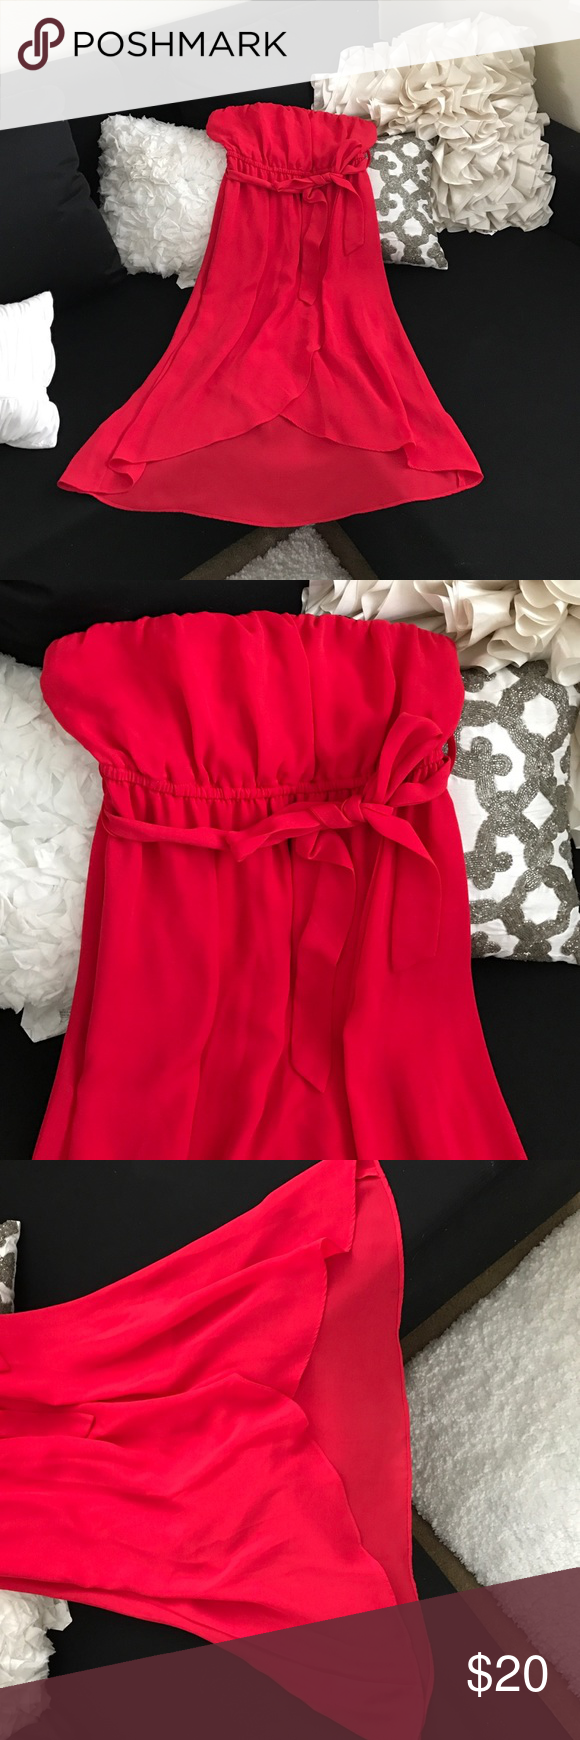 Coral red dress short long dresses bra straps and strapless dress